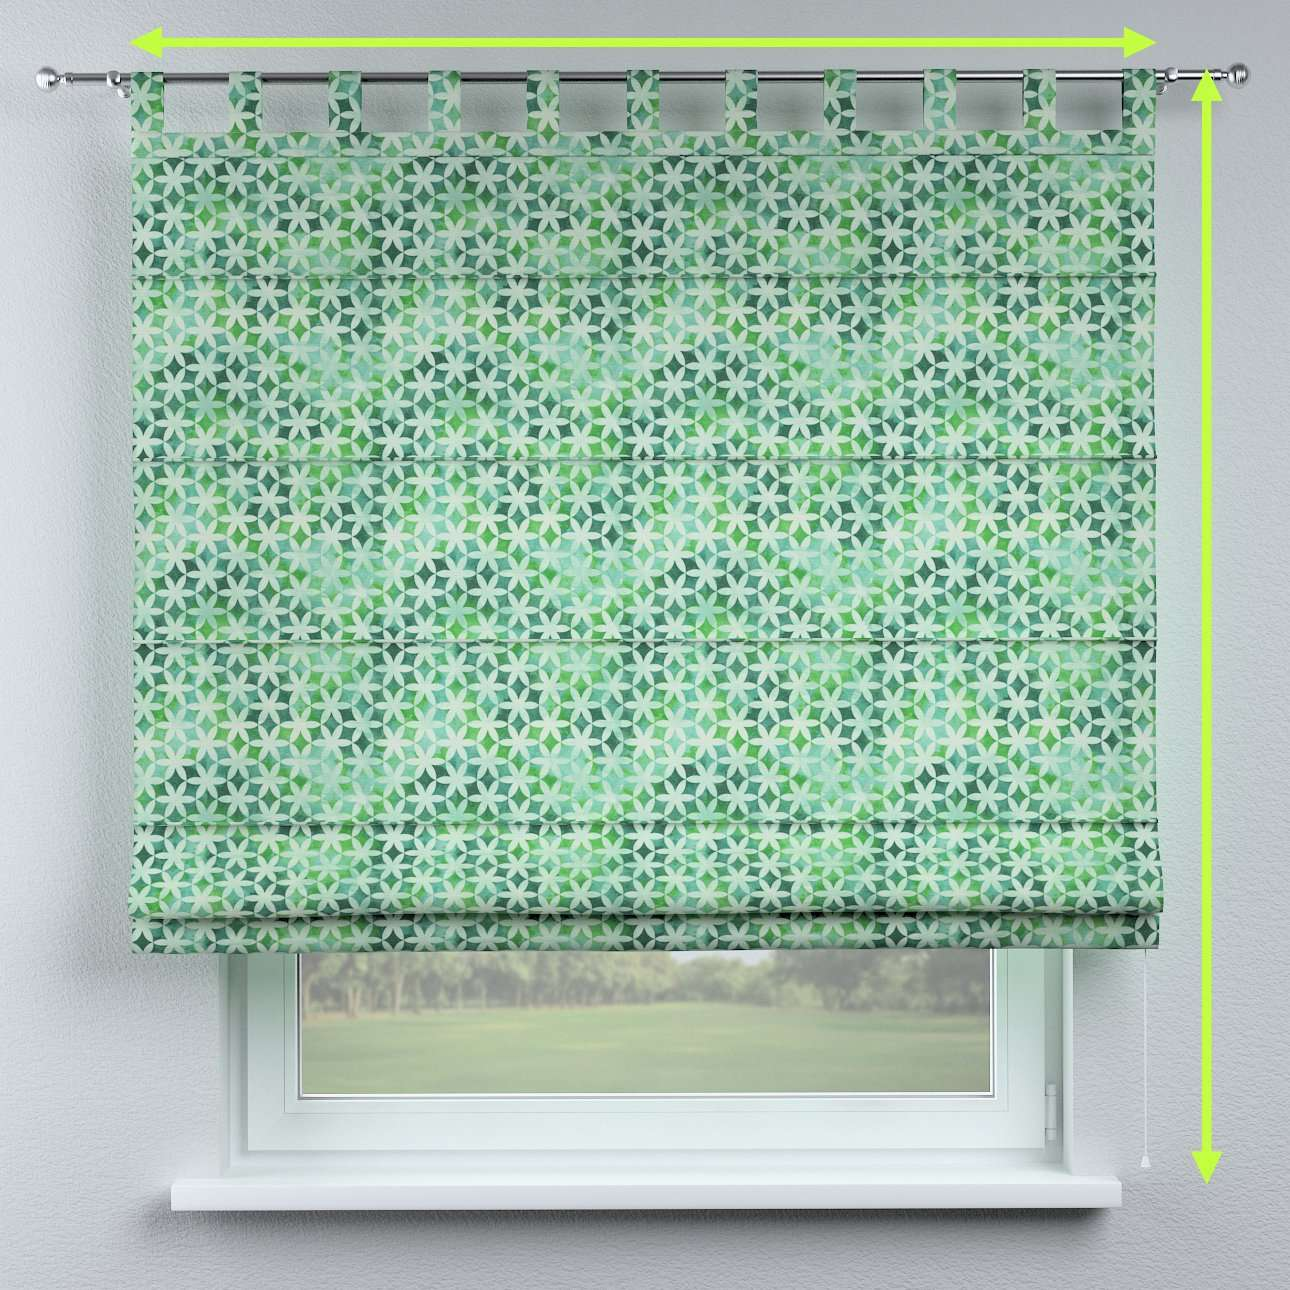 Verona tab top roman blind in collection Urban Jungle, fabric: 141-65